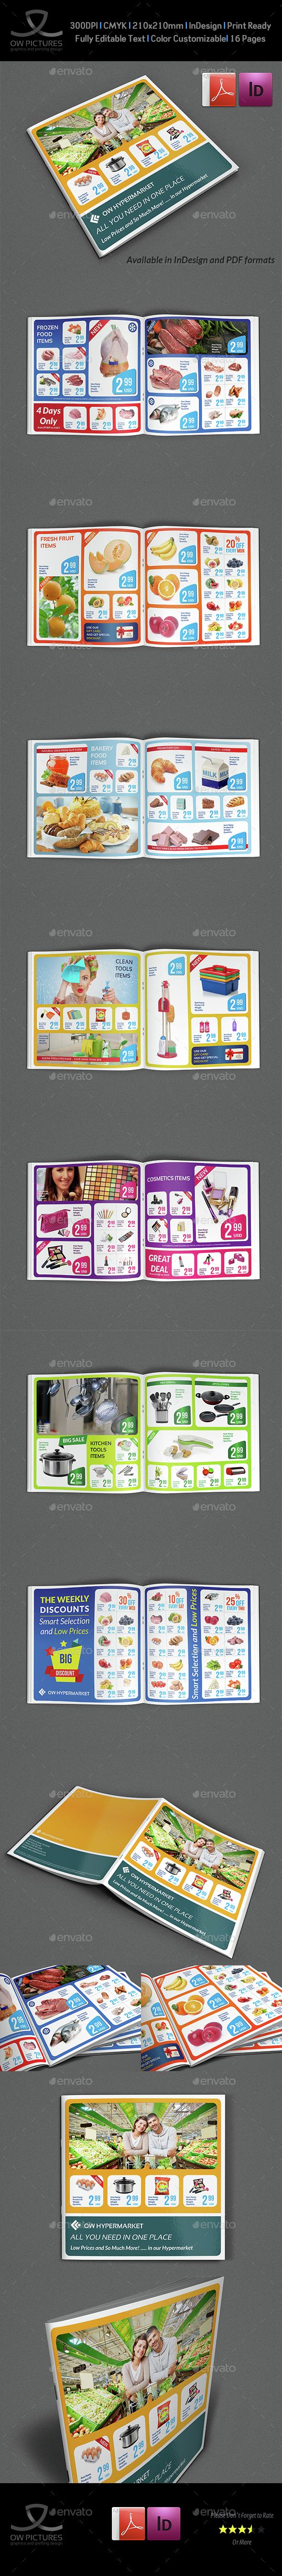 Supermarket Products Catalog Brochure Template InDesign INDD ...